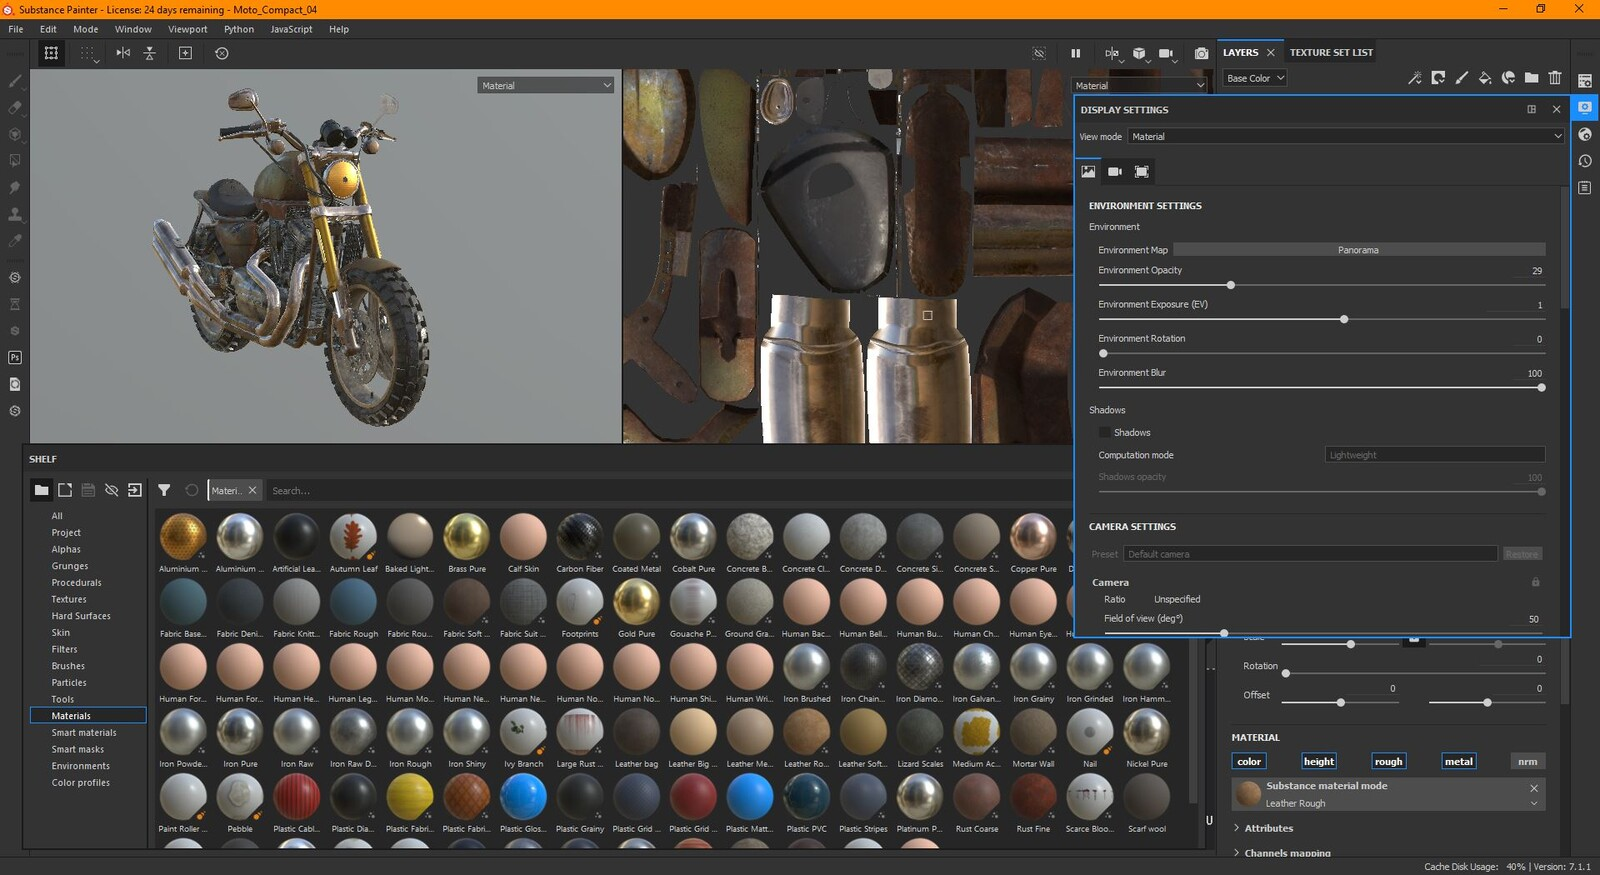 Re-texturing the bike in Substance Painter. PS: I still haven't come to grips with the not-that-new way of managing UDIMs. I always use the legacy texture sets.